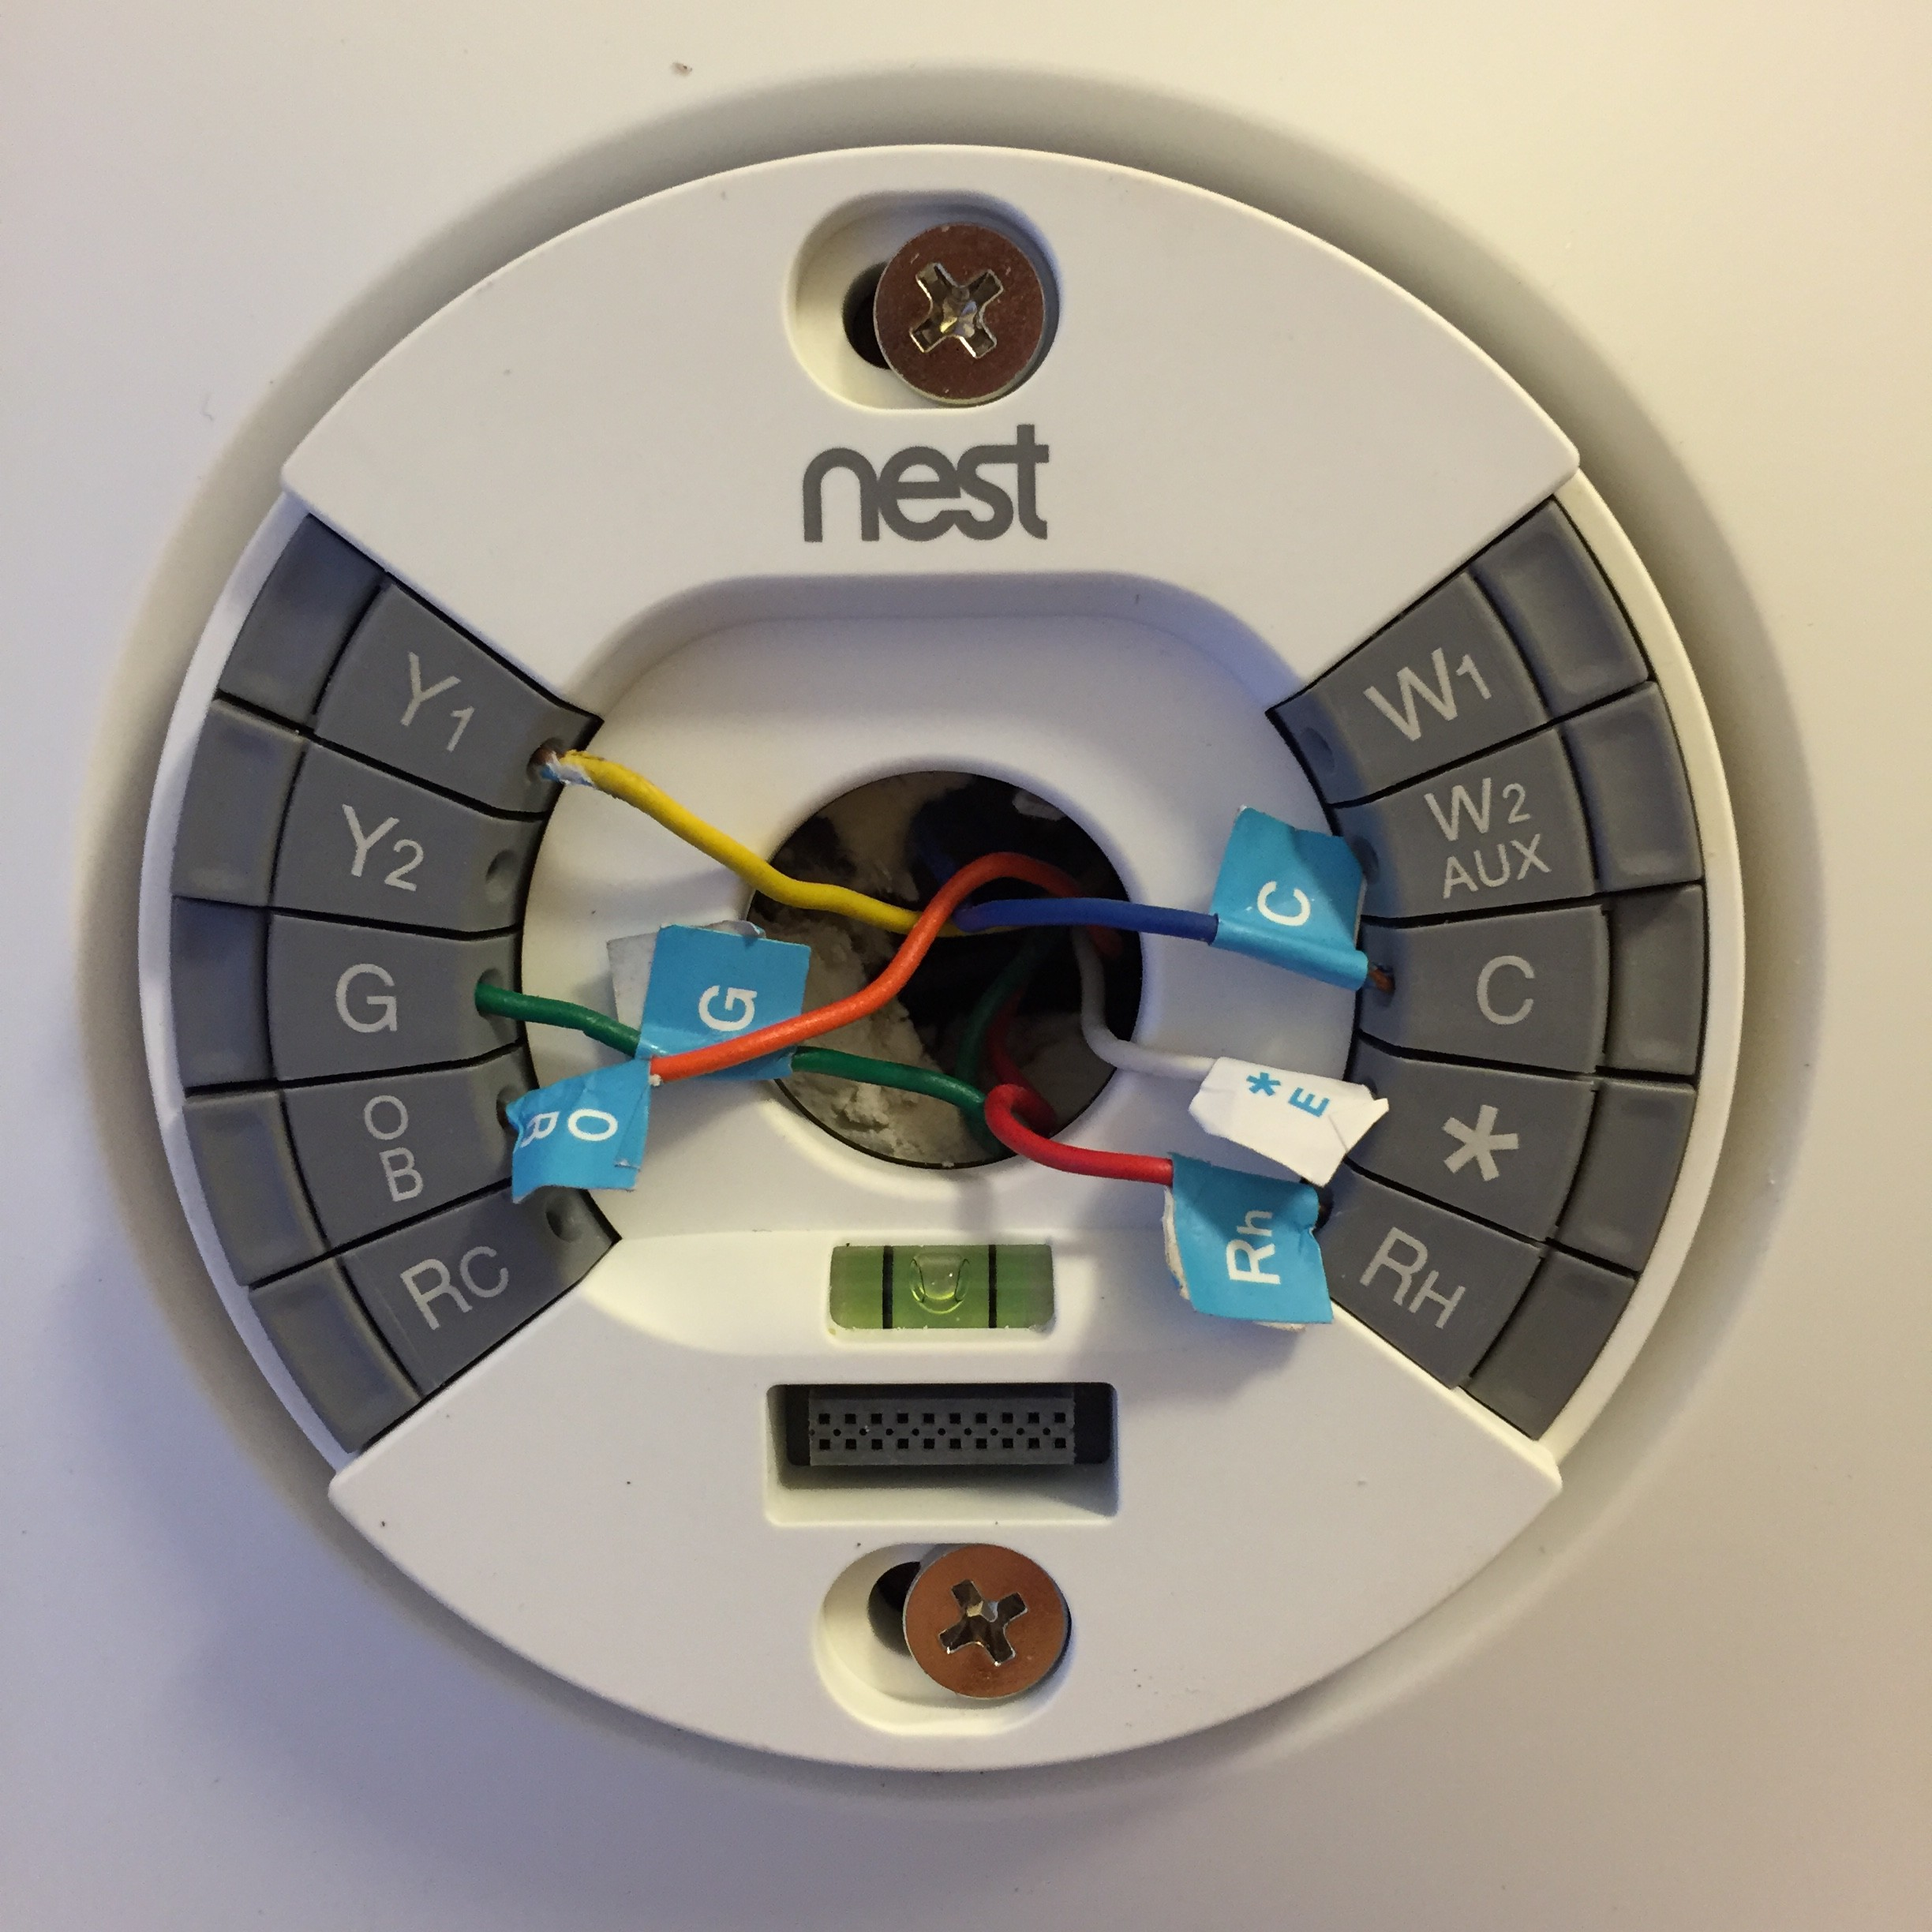 Nest E Heat Pump Wiring Best Secret Diagram Motor Diagrams Likewise Thermostat The Self Learning Comes To Sauser Home Problems Compatible